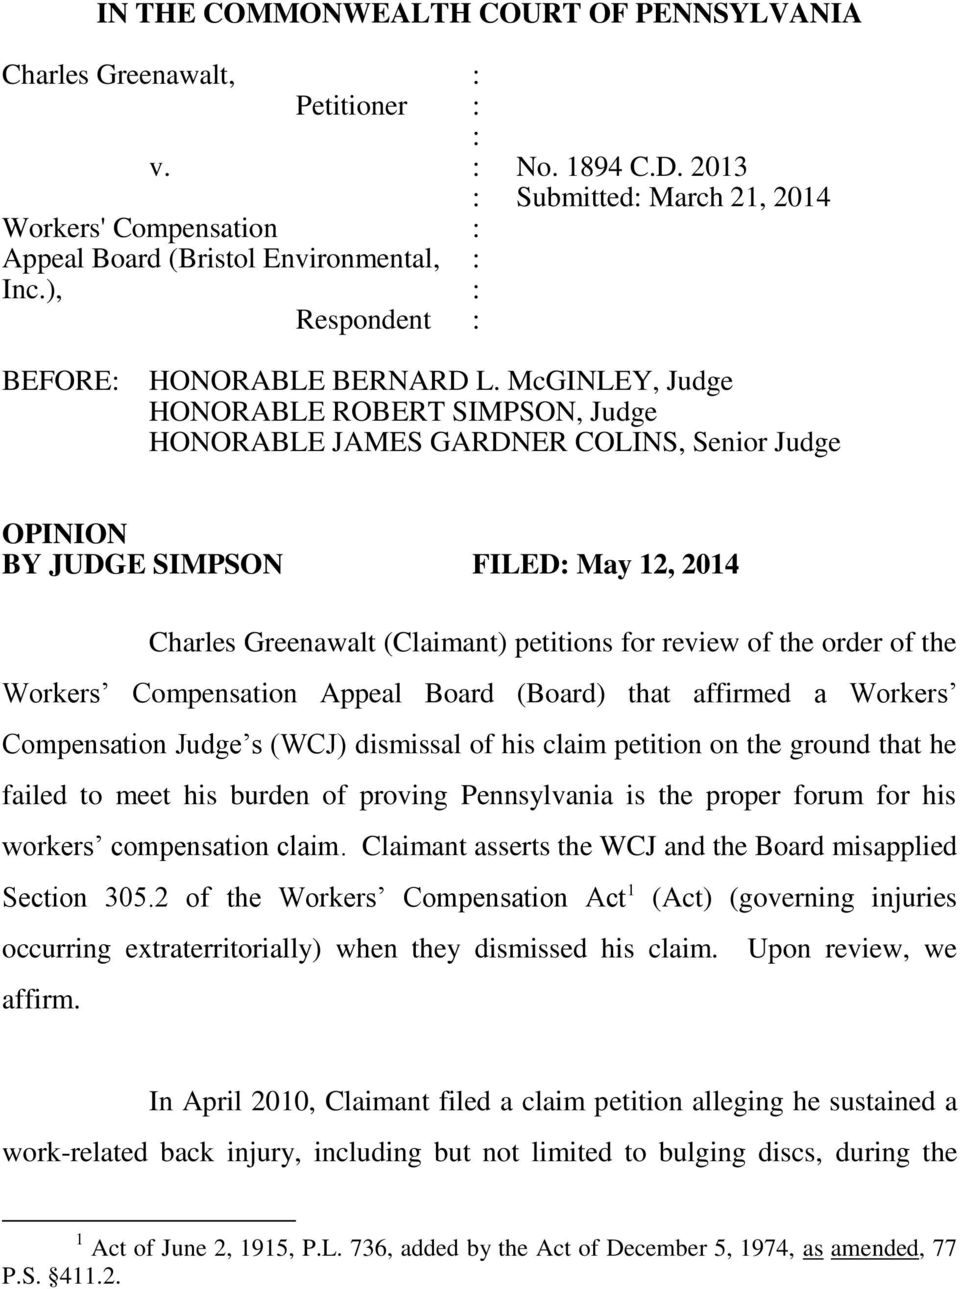 McGINLEY, Judge HONORABLE ROBERT SIMPSON, Judge HONORABLE JAMES GARDNER COLINS, Senior Judge OPINION BY JUDGE SIMPSON FILED: May 12, 2014 Charles Greenawalt (Claimant) petitions for review of the